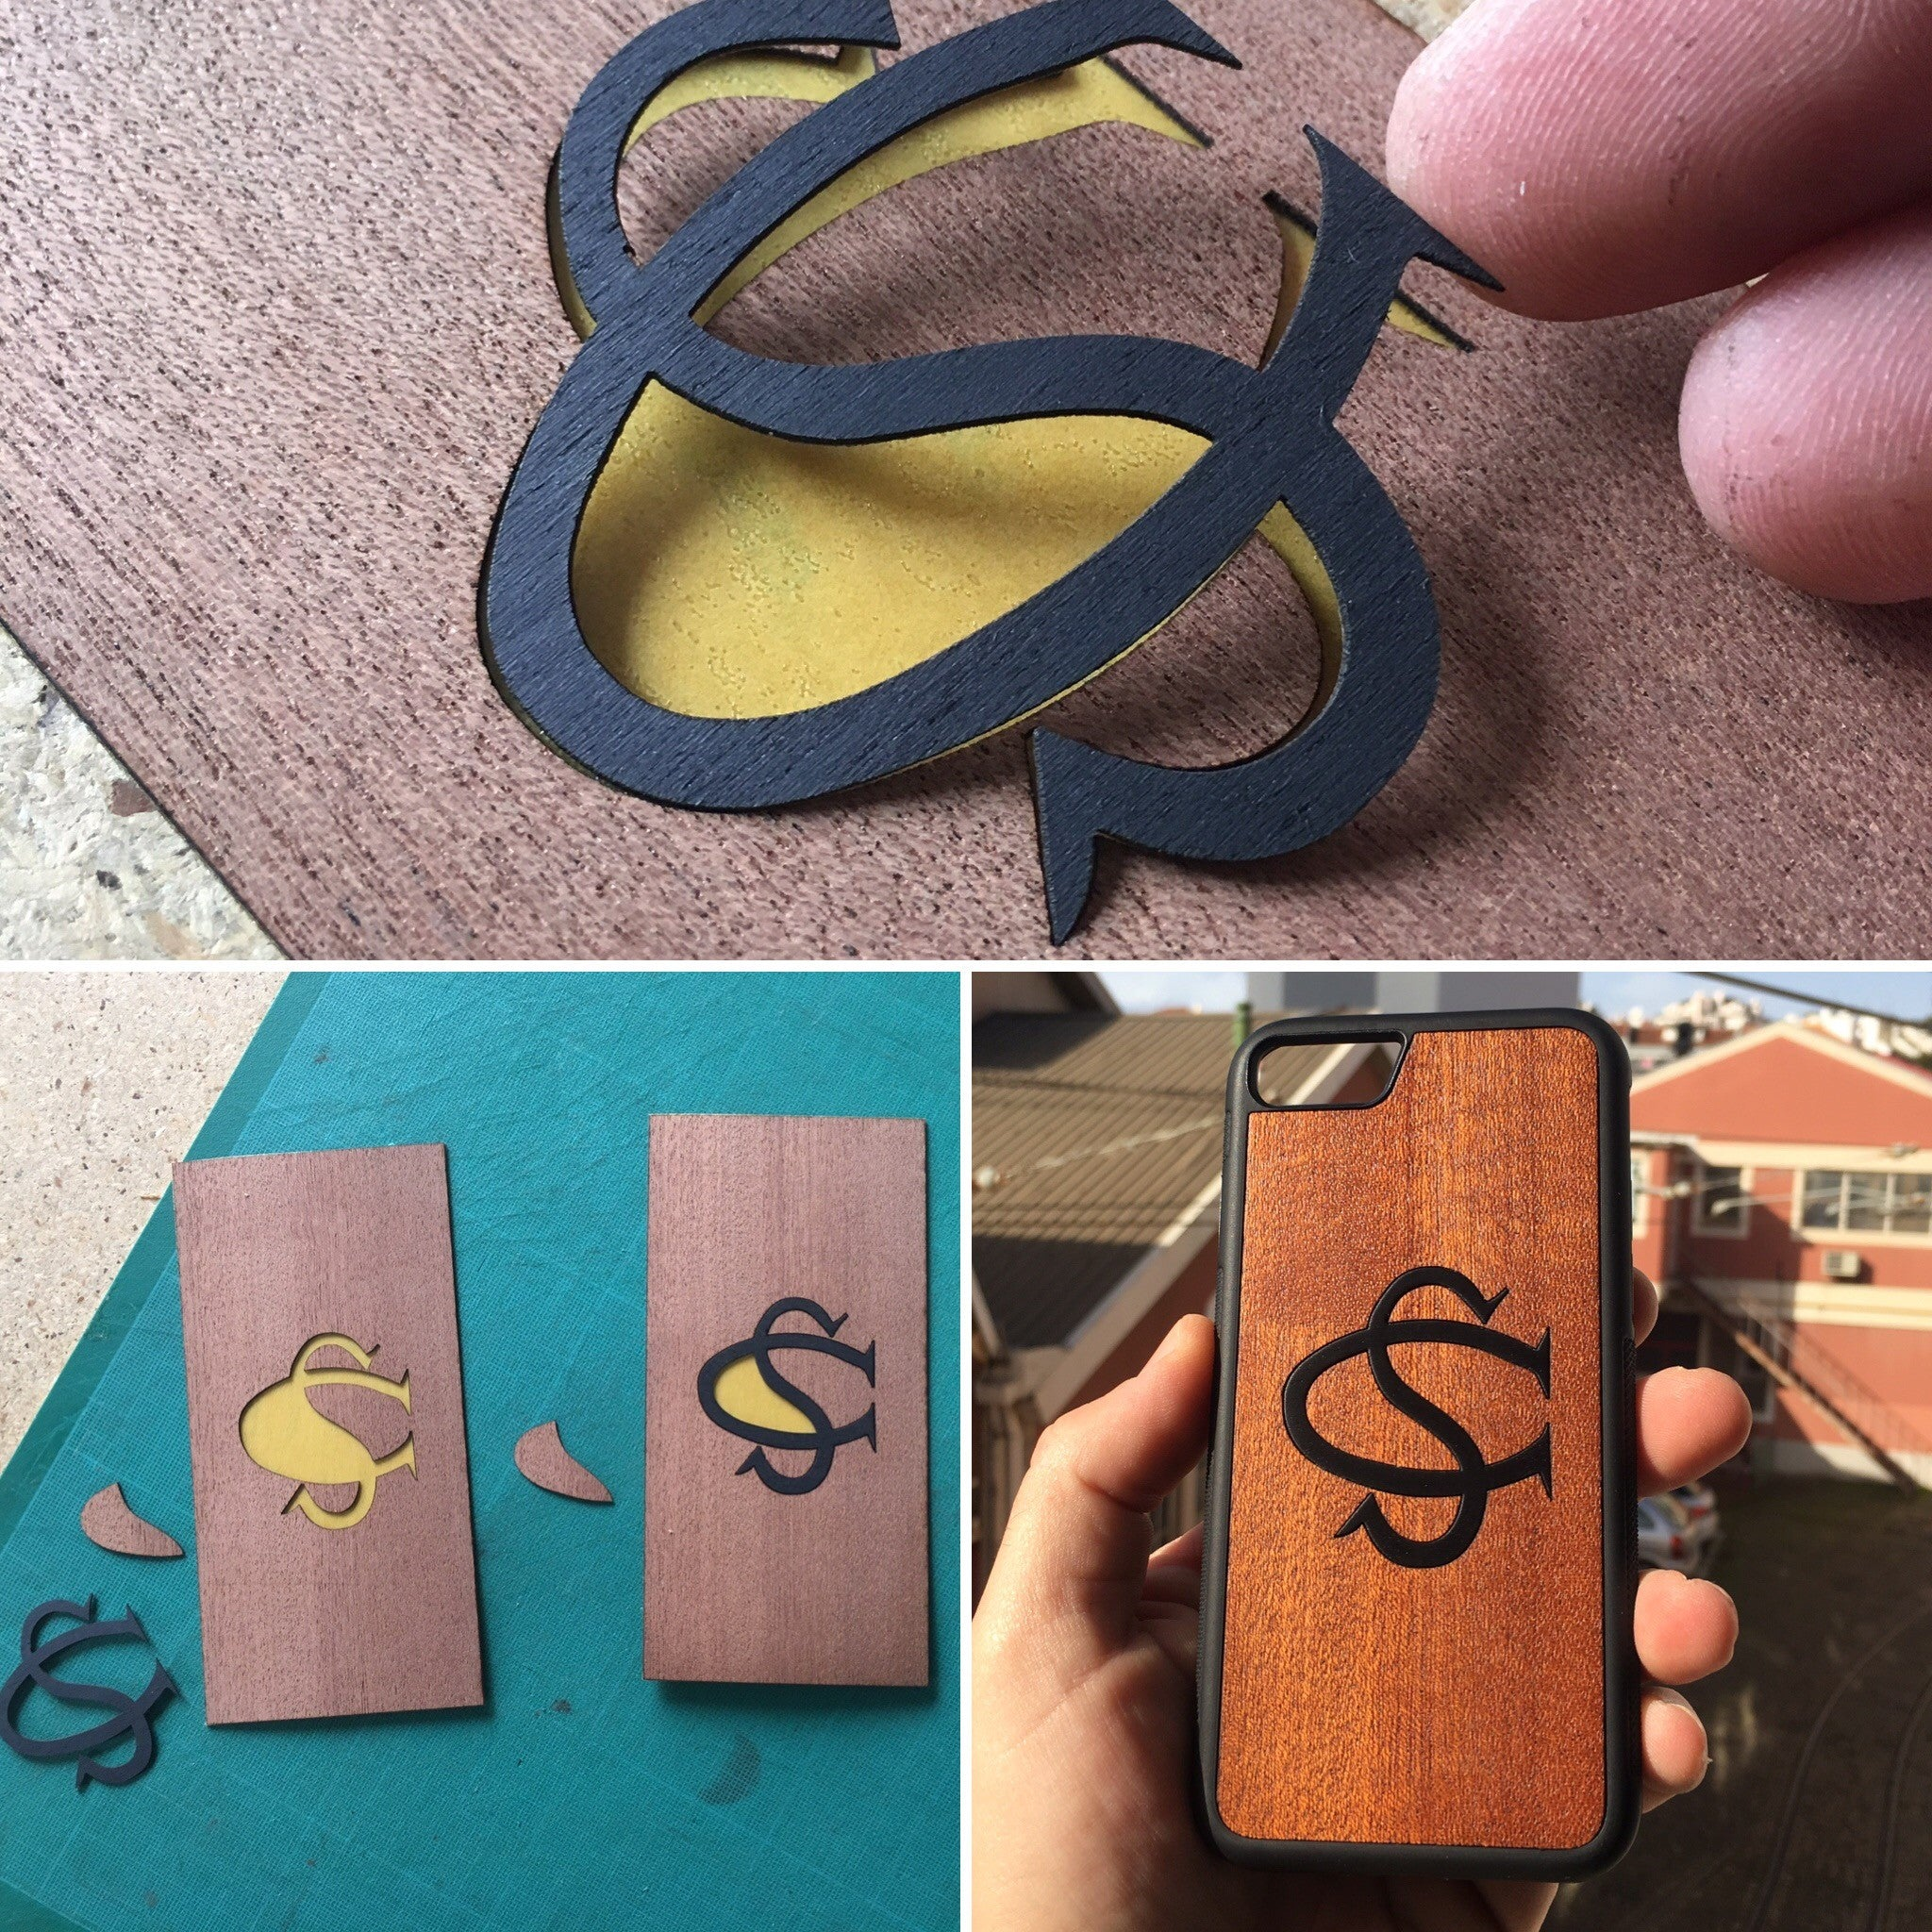 We are eager to bring your ideas to life in apersonal, durable, premium smartphone case. Our team works closely with each costumer to make sure that every case fits your vision.